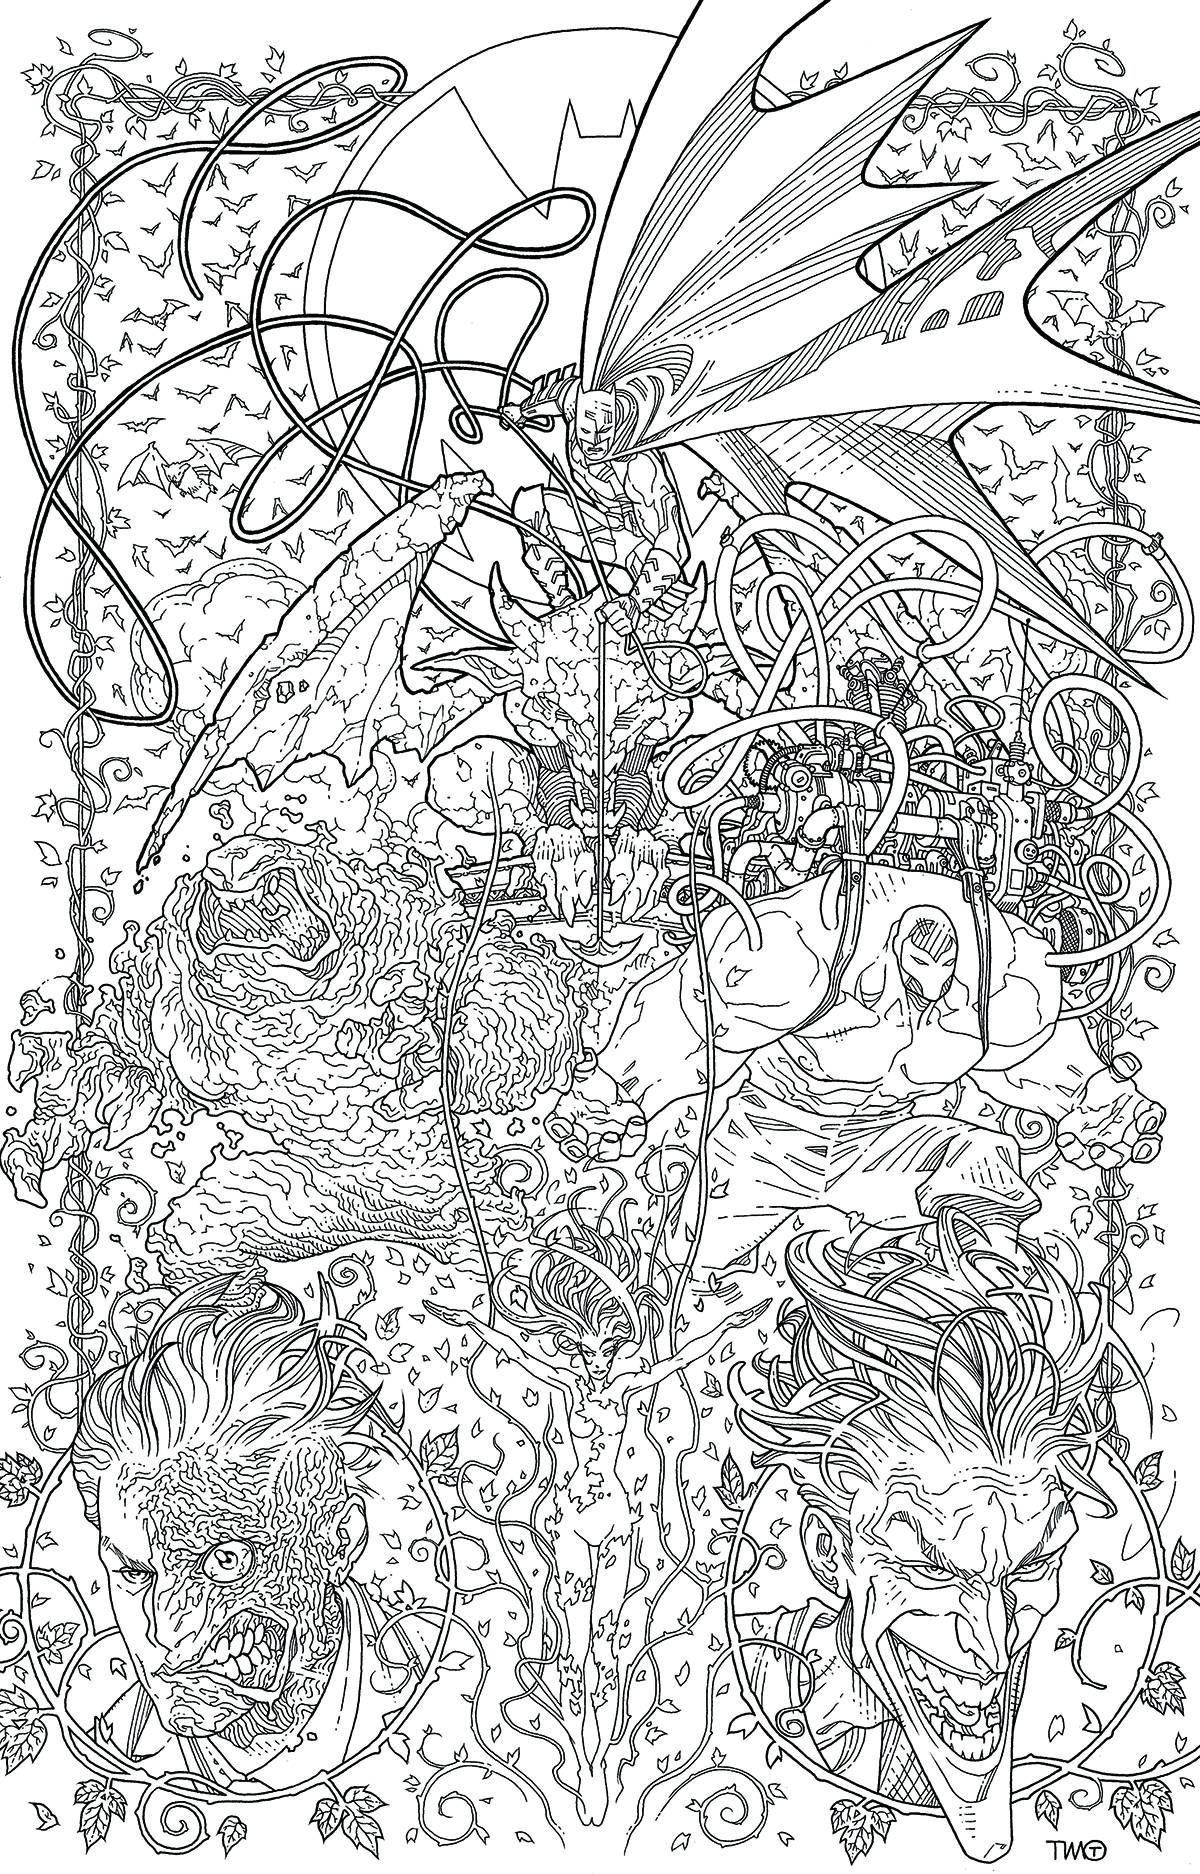 dc comics coloring pages Collection-dc ics coloring book High Quality Coloring Pages 4-e